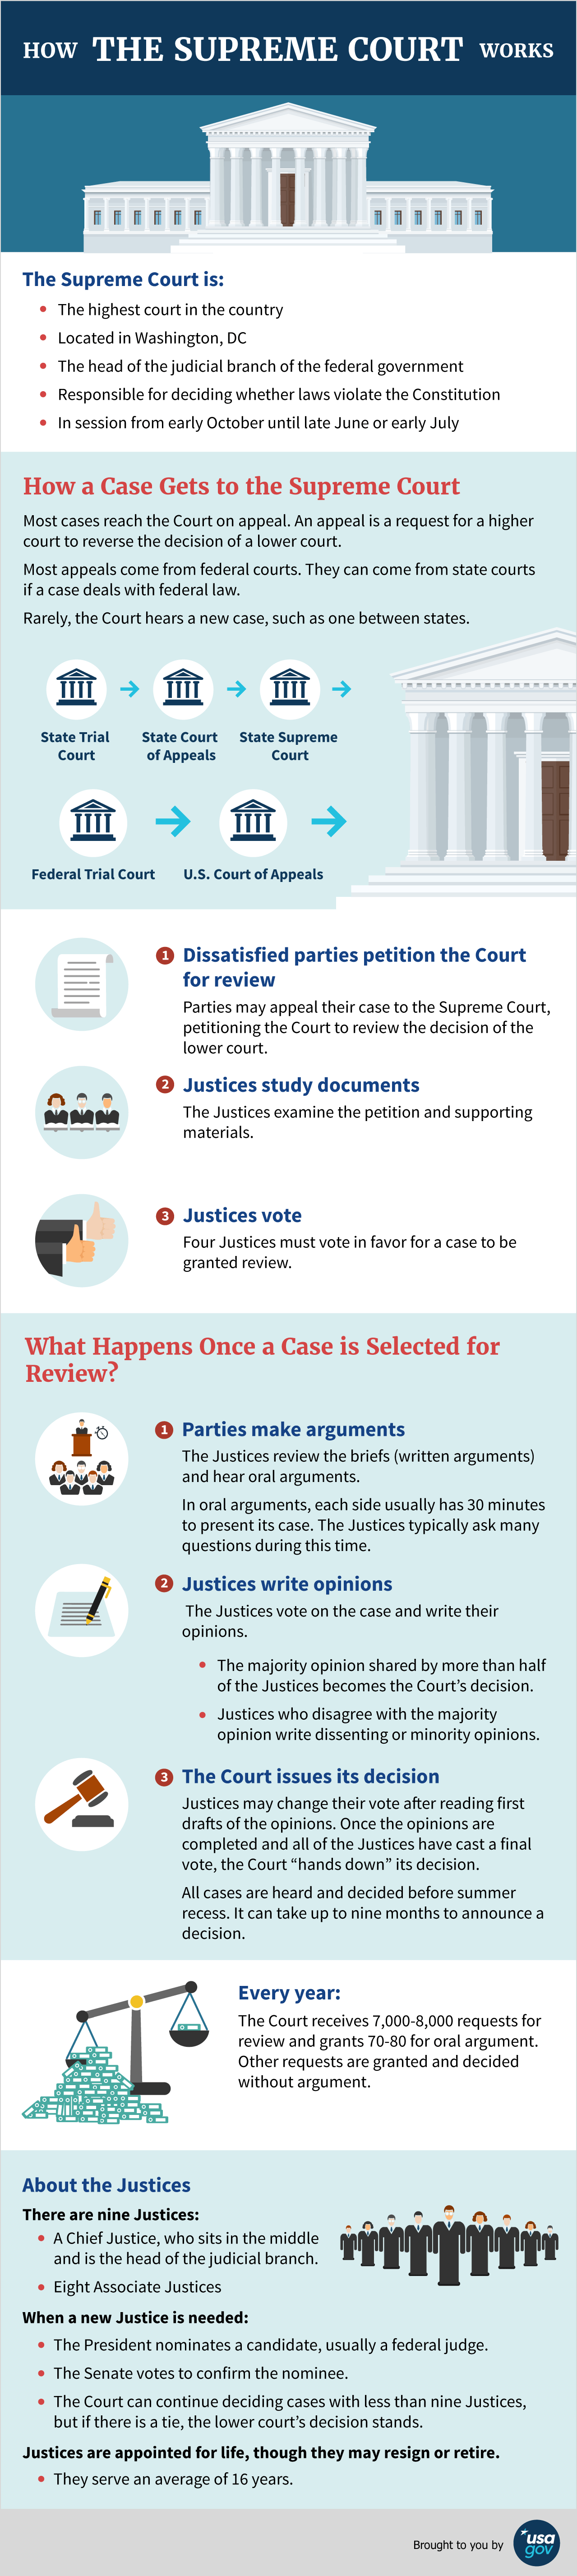 How The Supreme Court Works Infographic See Description